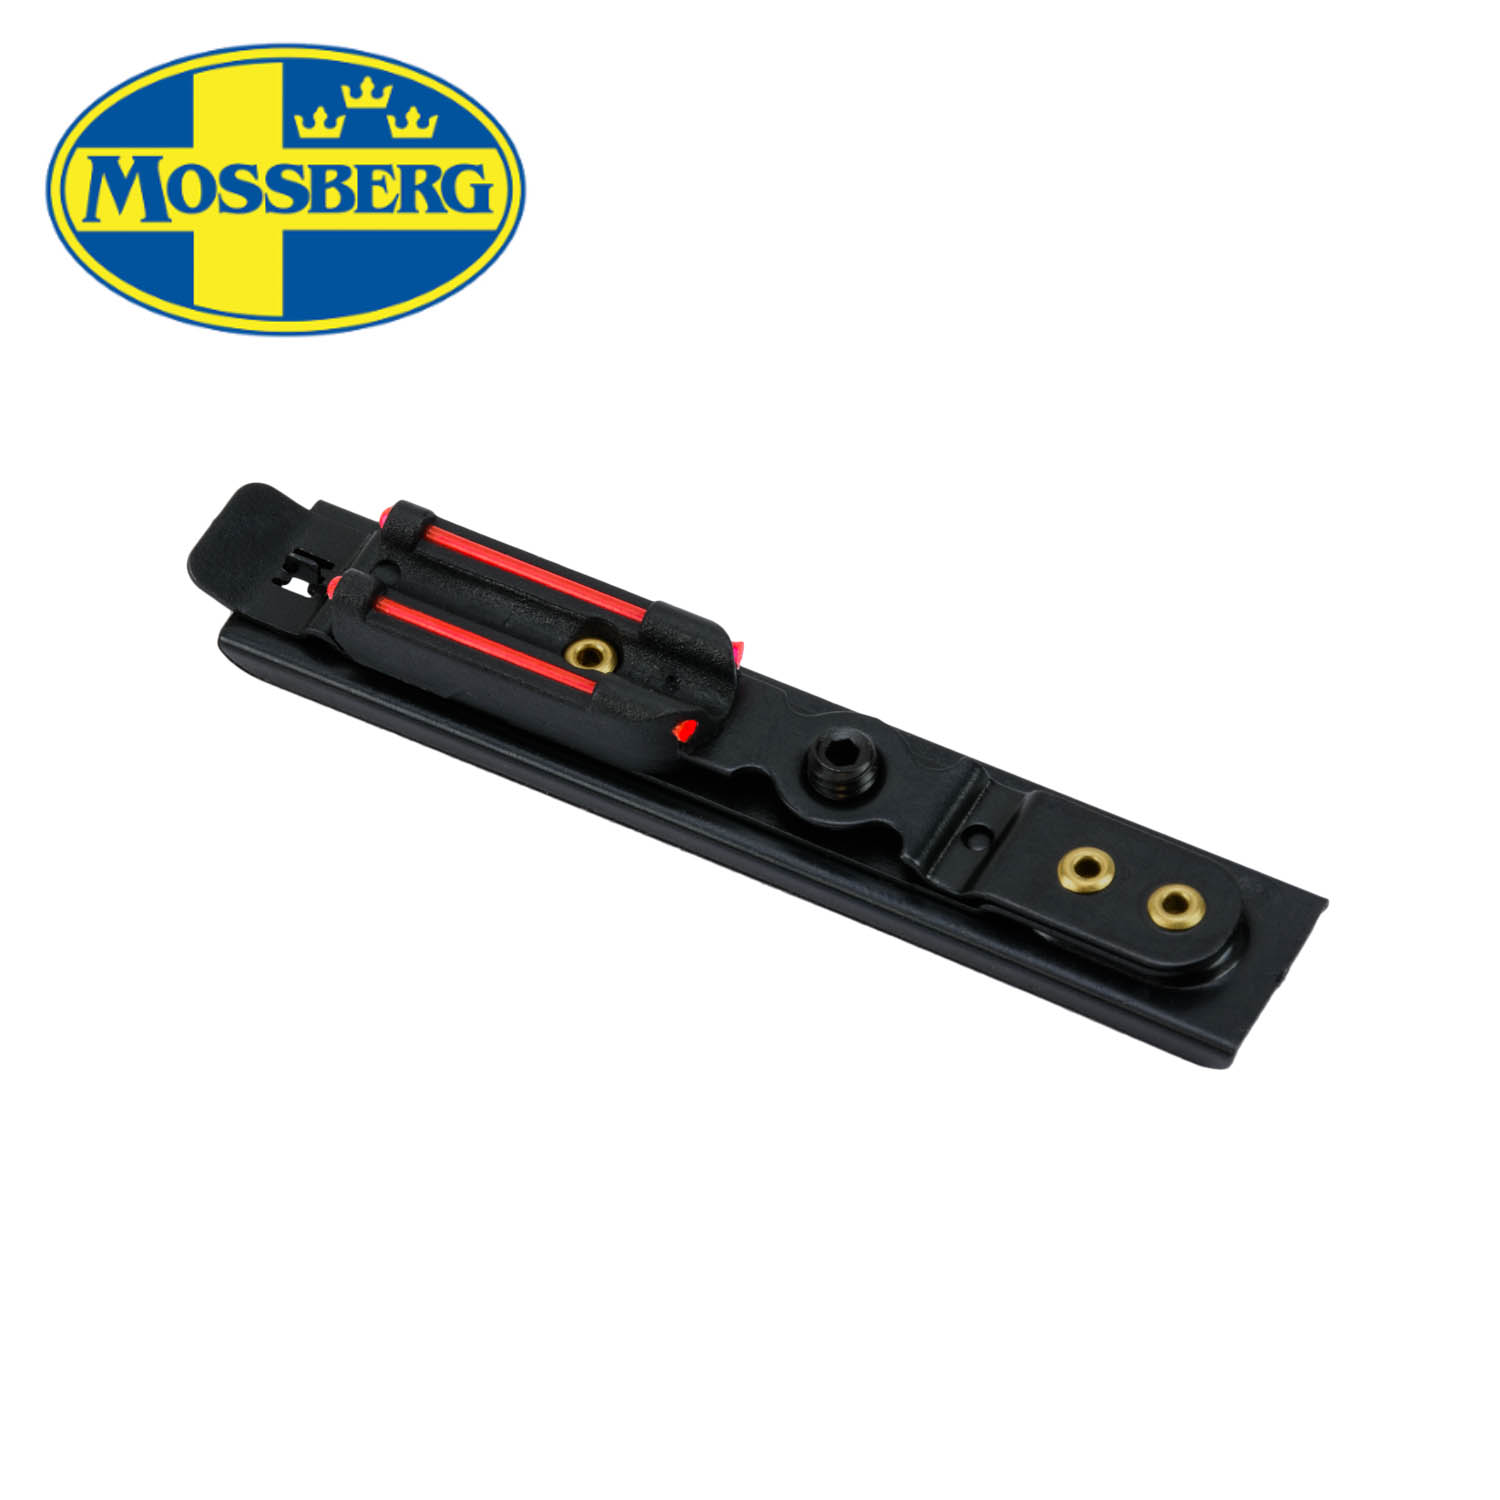 Mossberg 500 / 535 / 835 / 930 / 935 Turkey Fiber Optic Snap-On Rear Sight,  Red: Midwest Gun Works